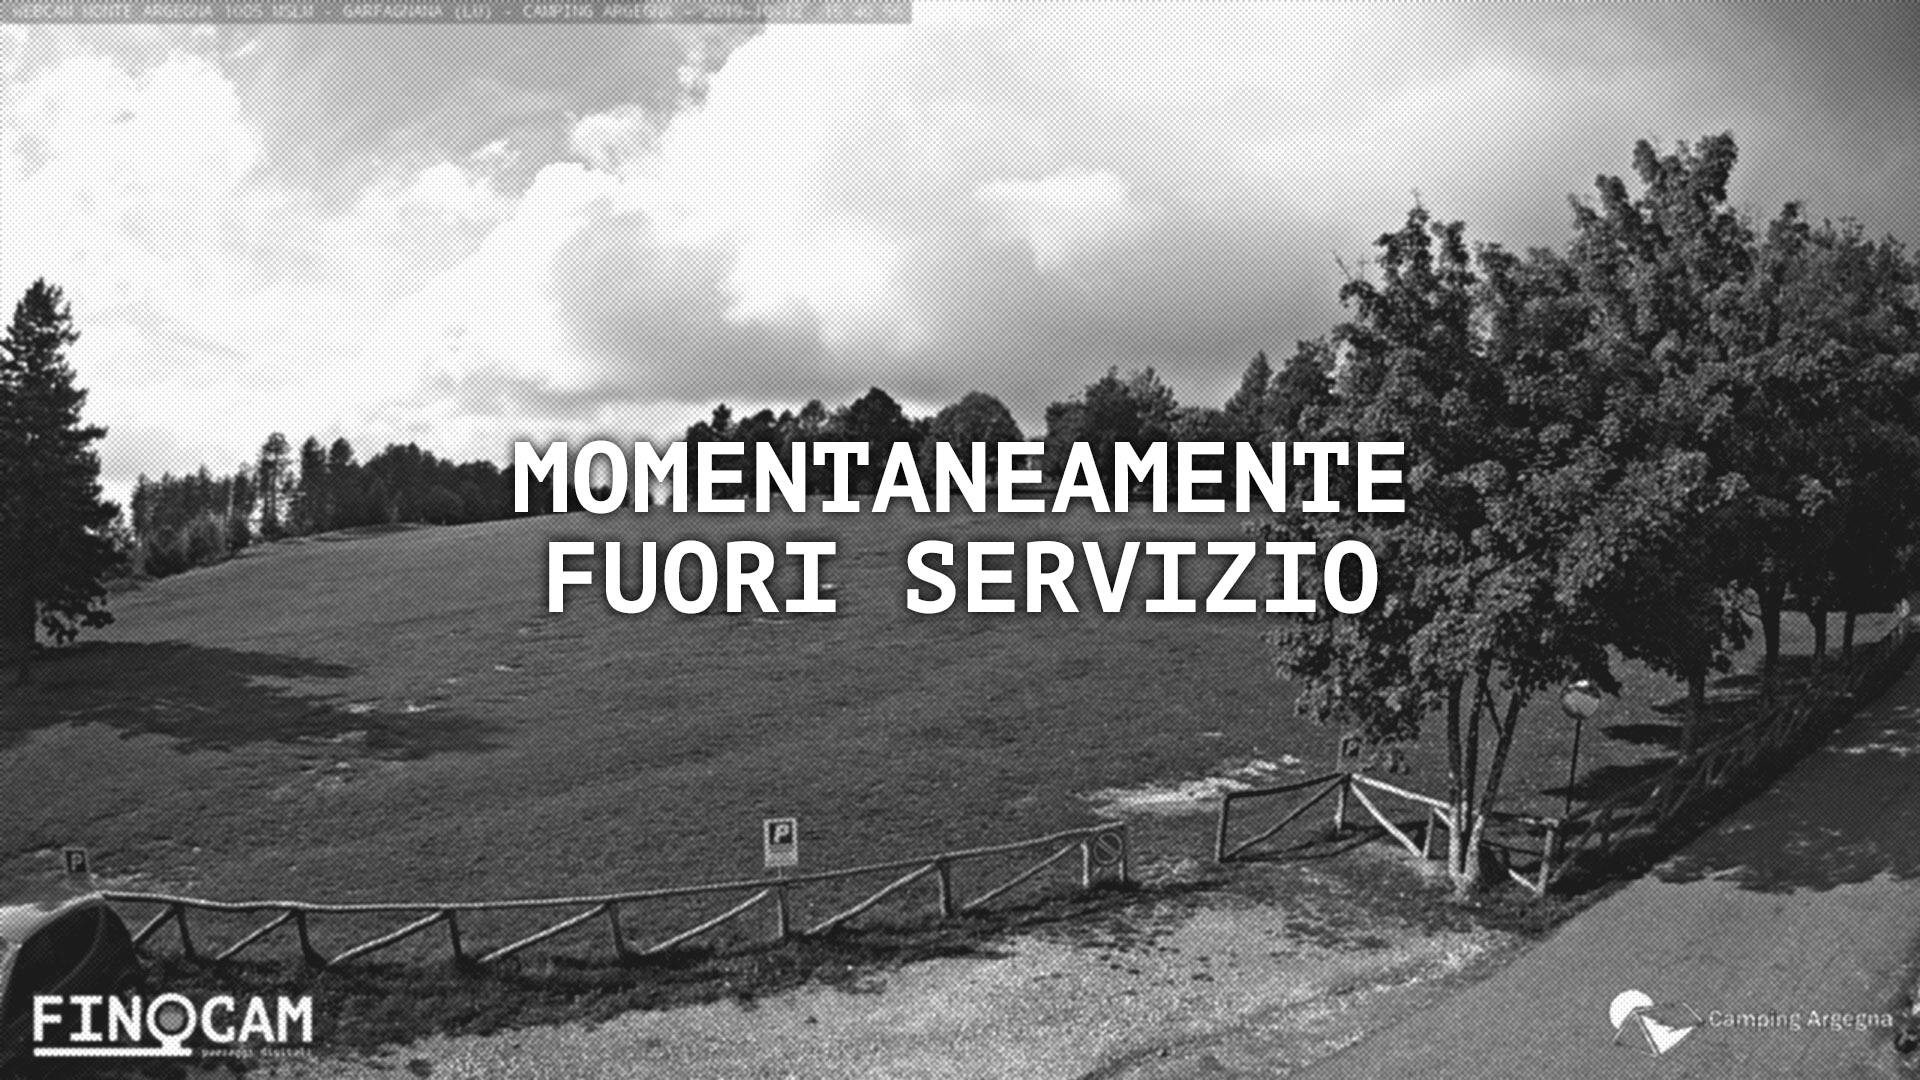 Webcam Monte Argegna (LU)